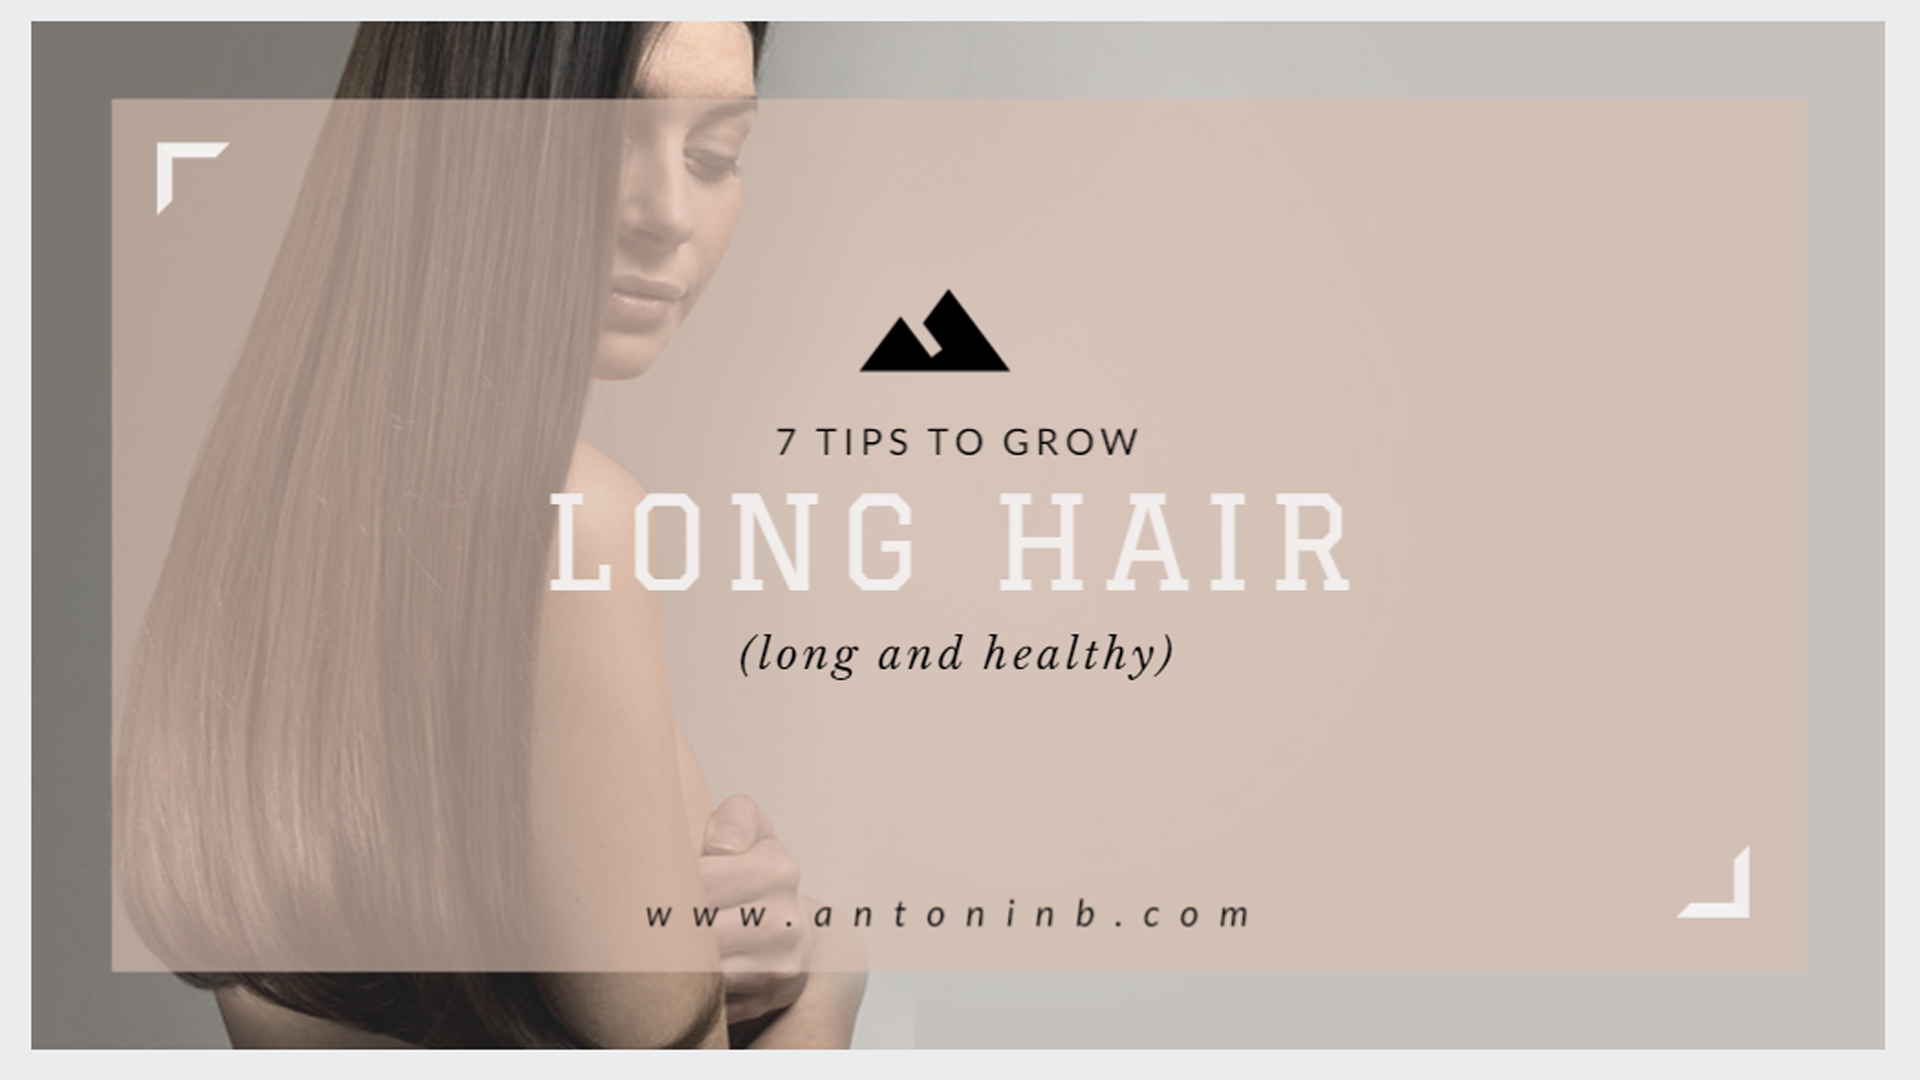 7 tips to grow healthier and longer hair (1 of 2)